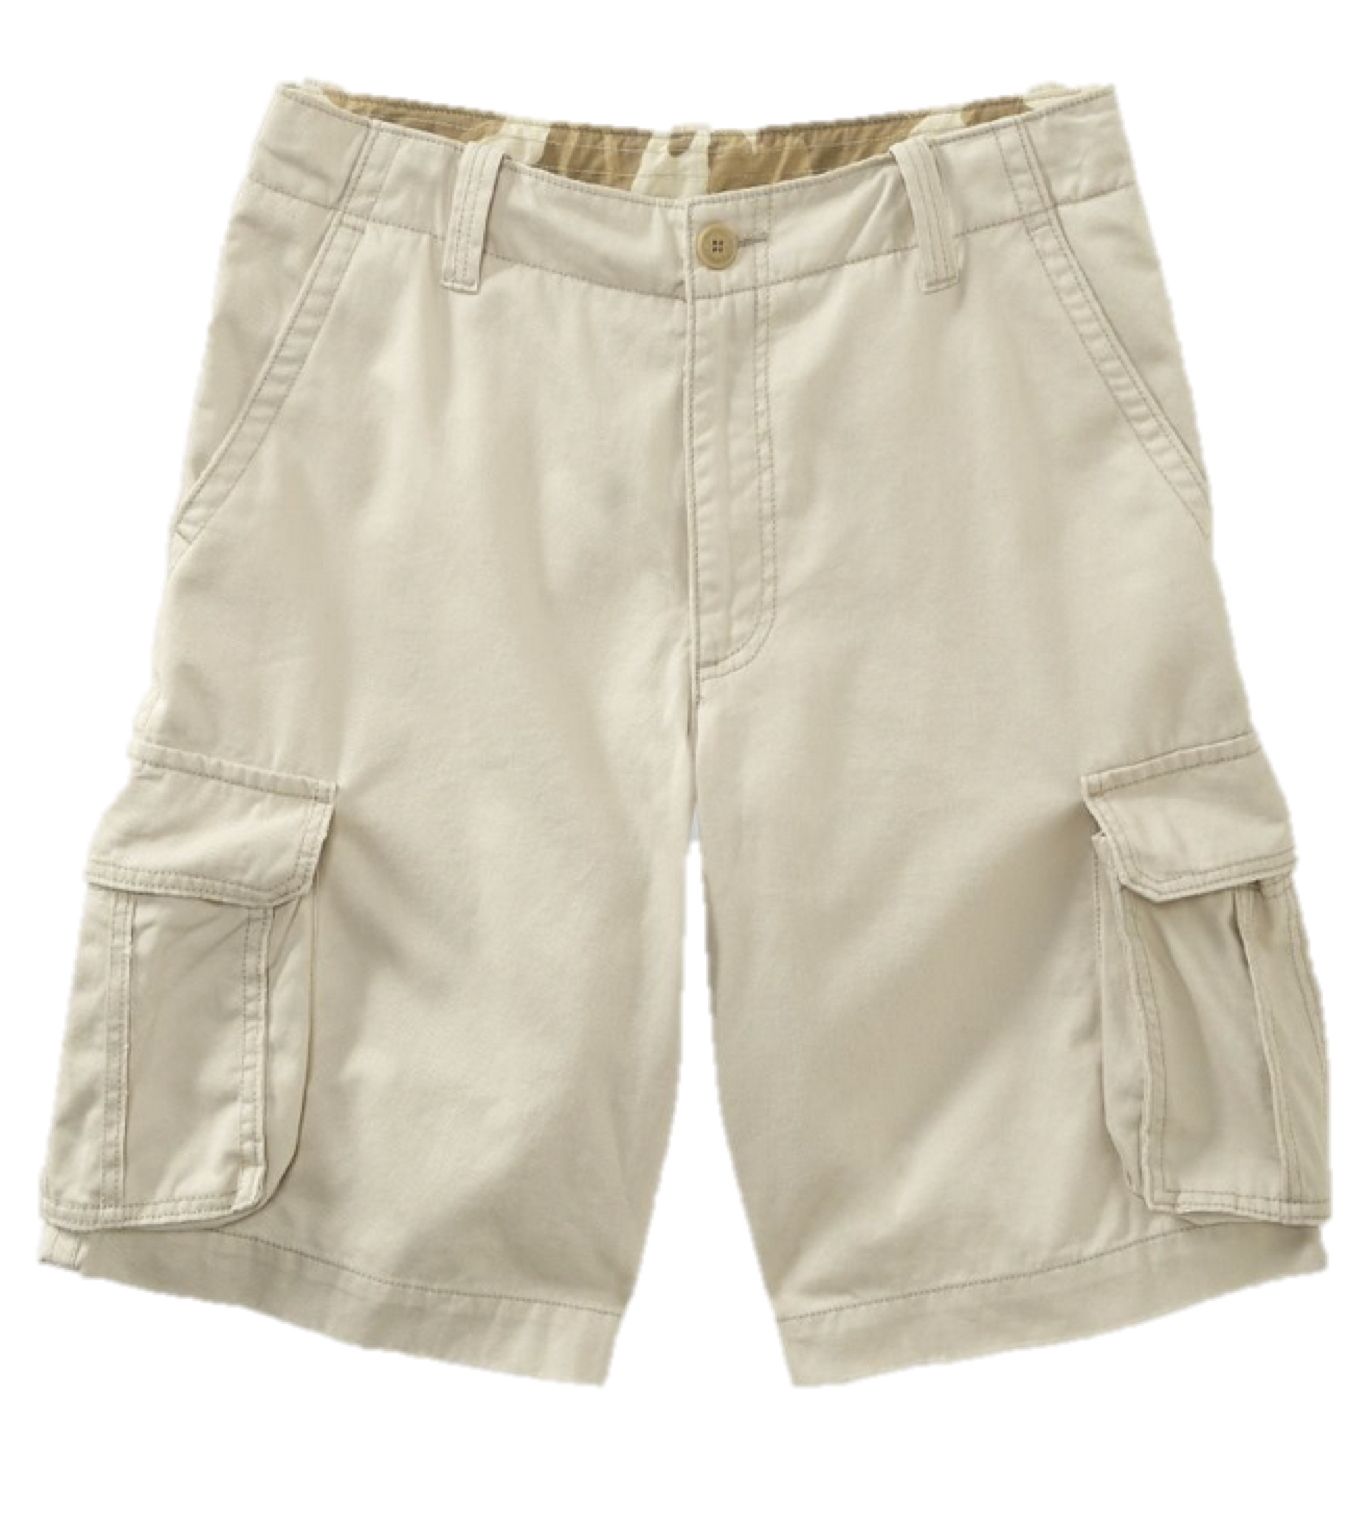 Aeropostale Mens Cargo Shorts Longer Length Khaki Chino Work ...